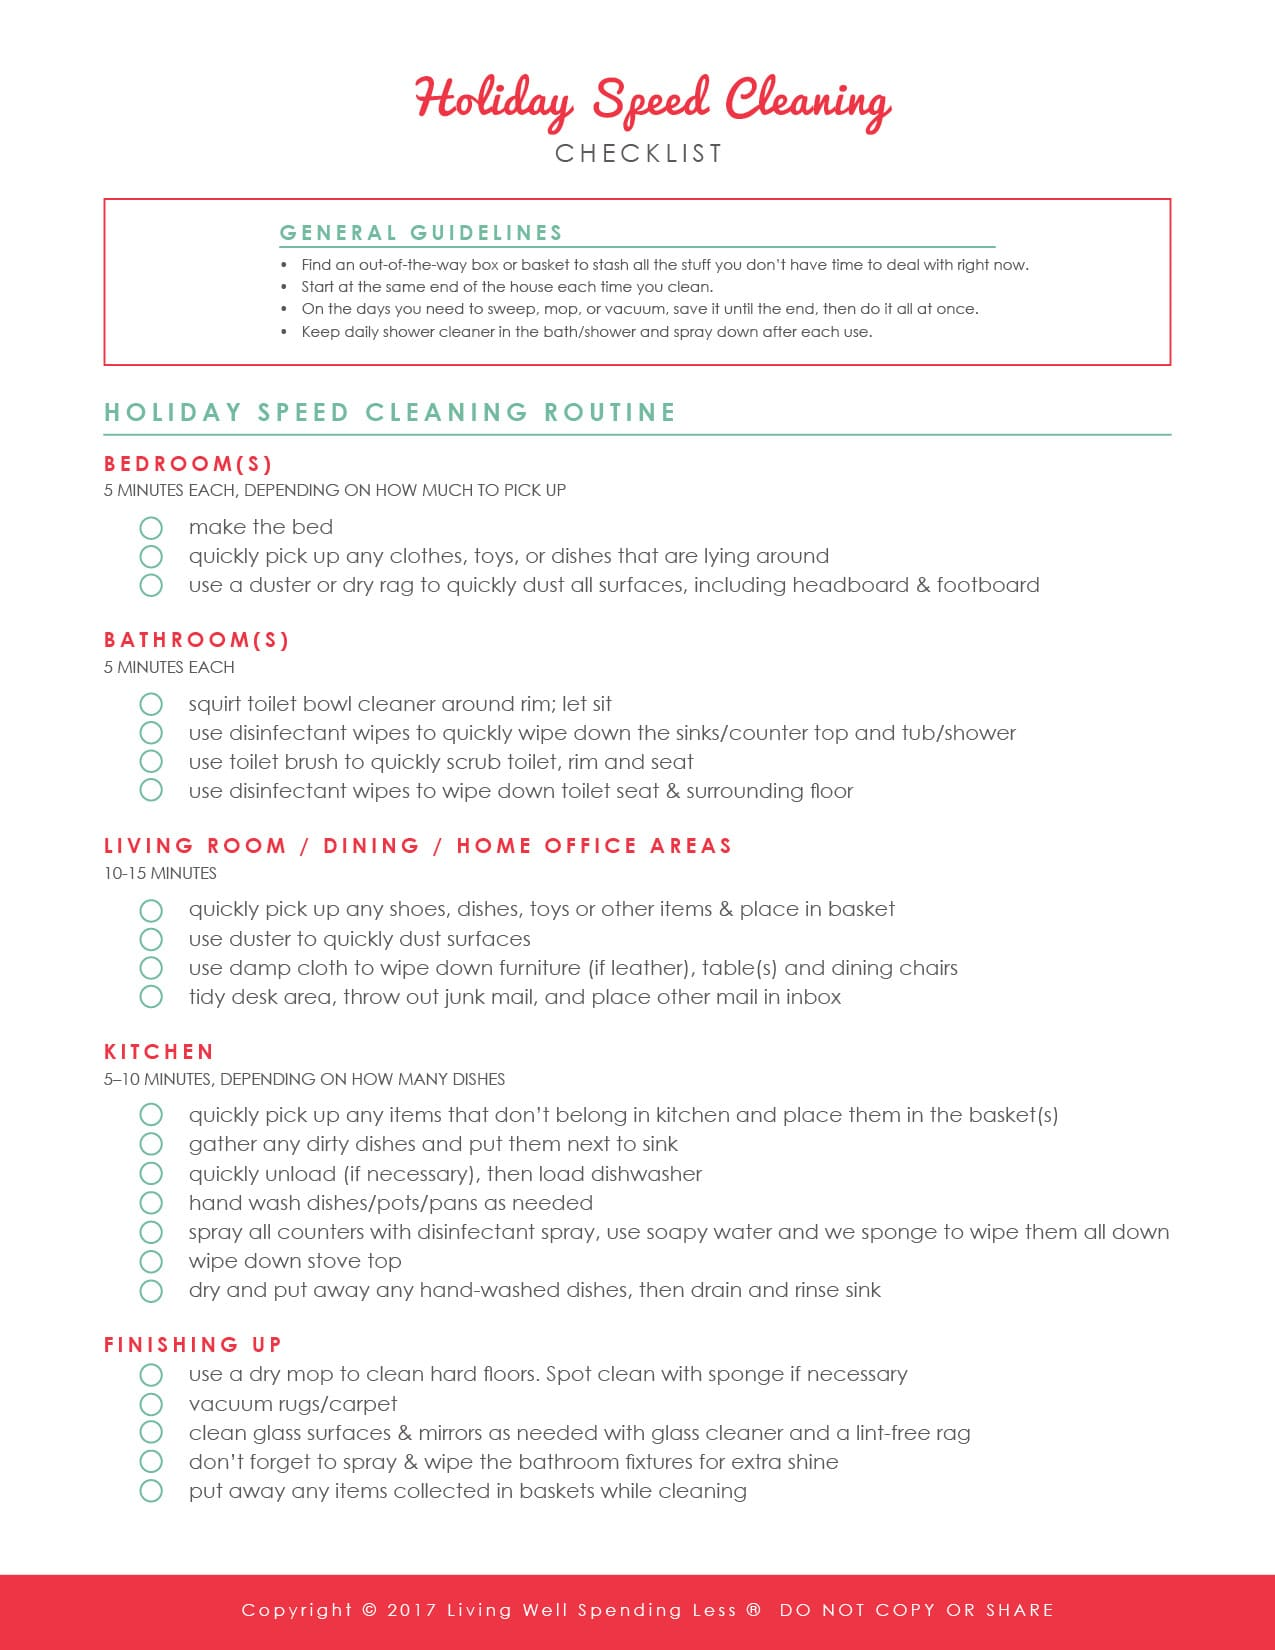 The Holiday Speed Cleaning Checklist | Free Printable from Living Well, Spending Less